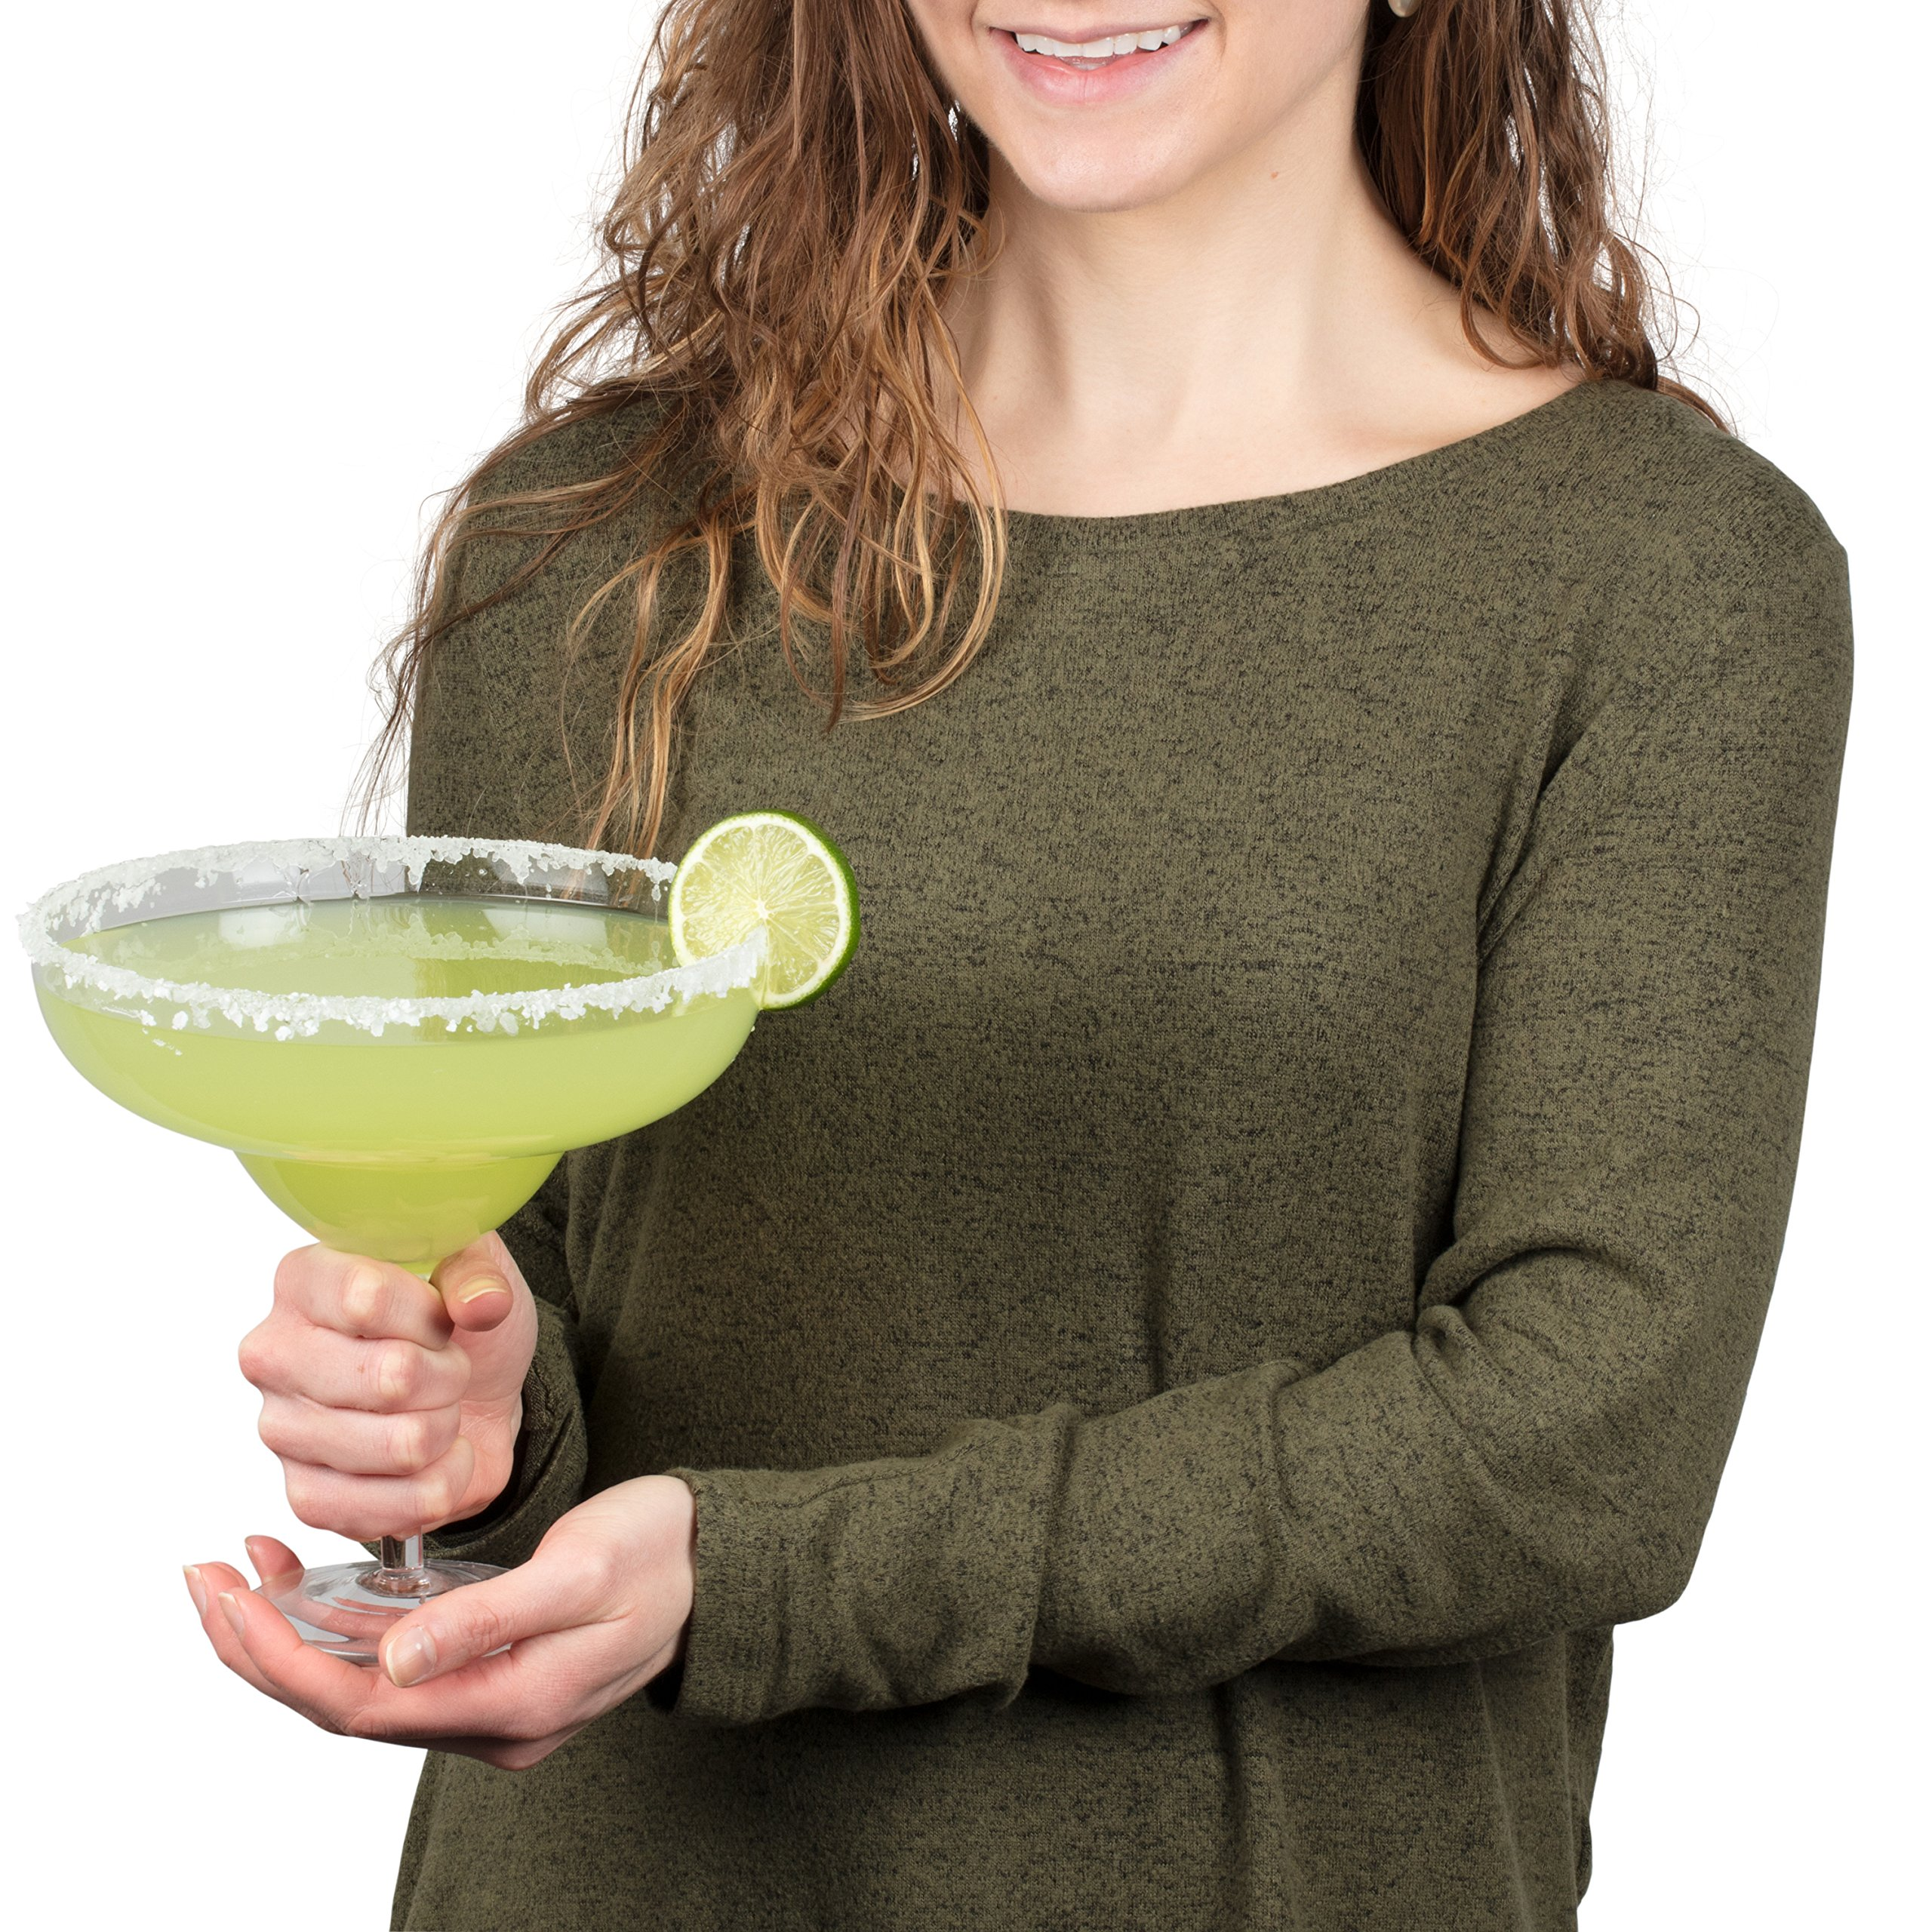 Extra Large Giant Cinco De Mayo Margarita Glass - 34oz - Fits about 3 typical margaritas! by Royal Lush (Image #1)